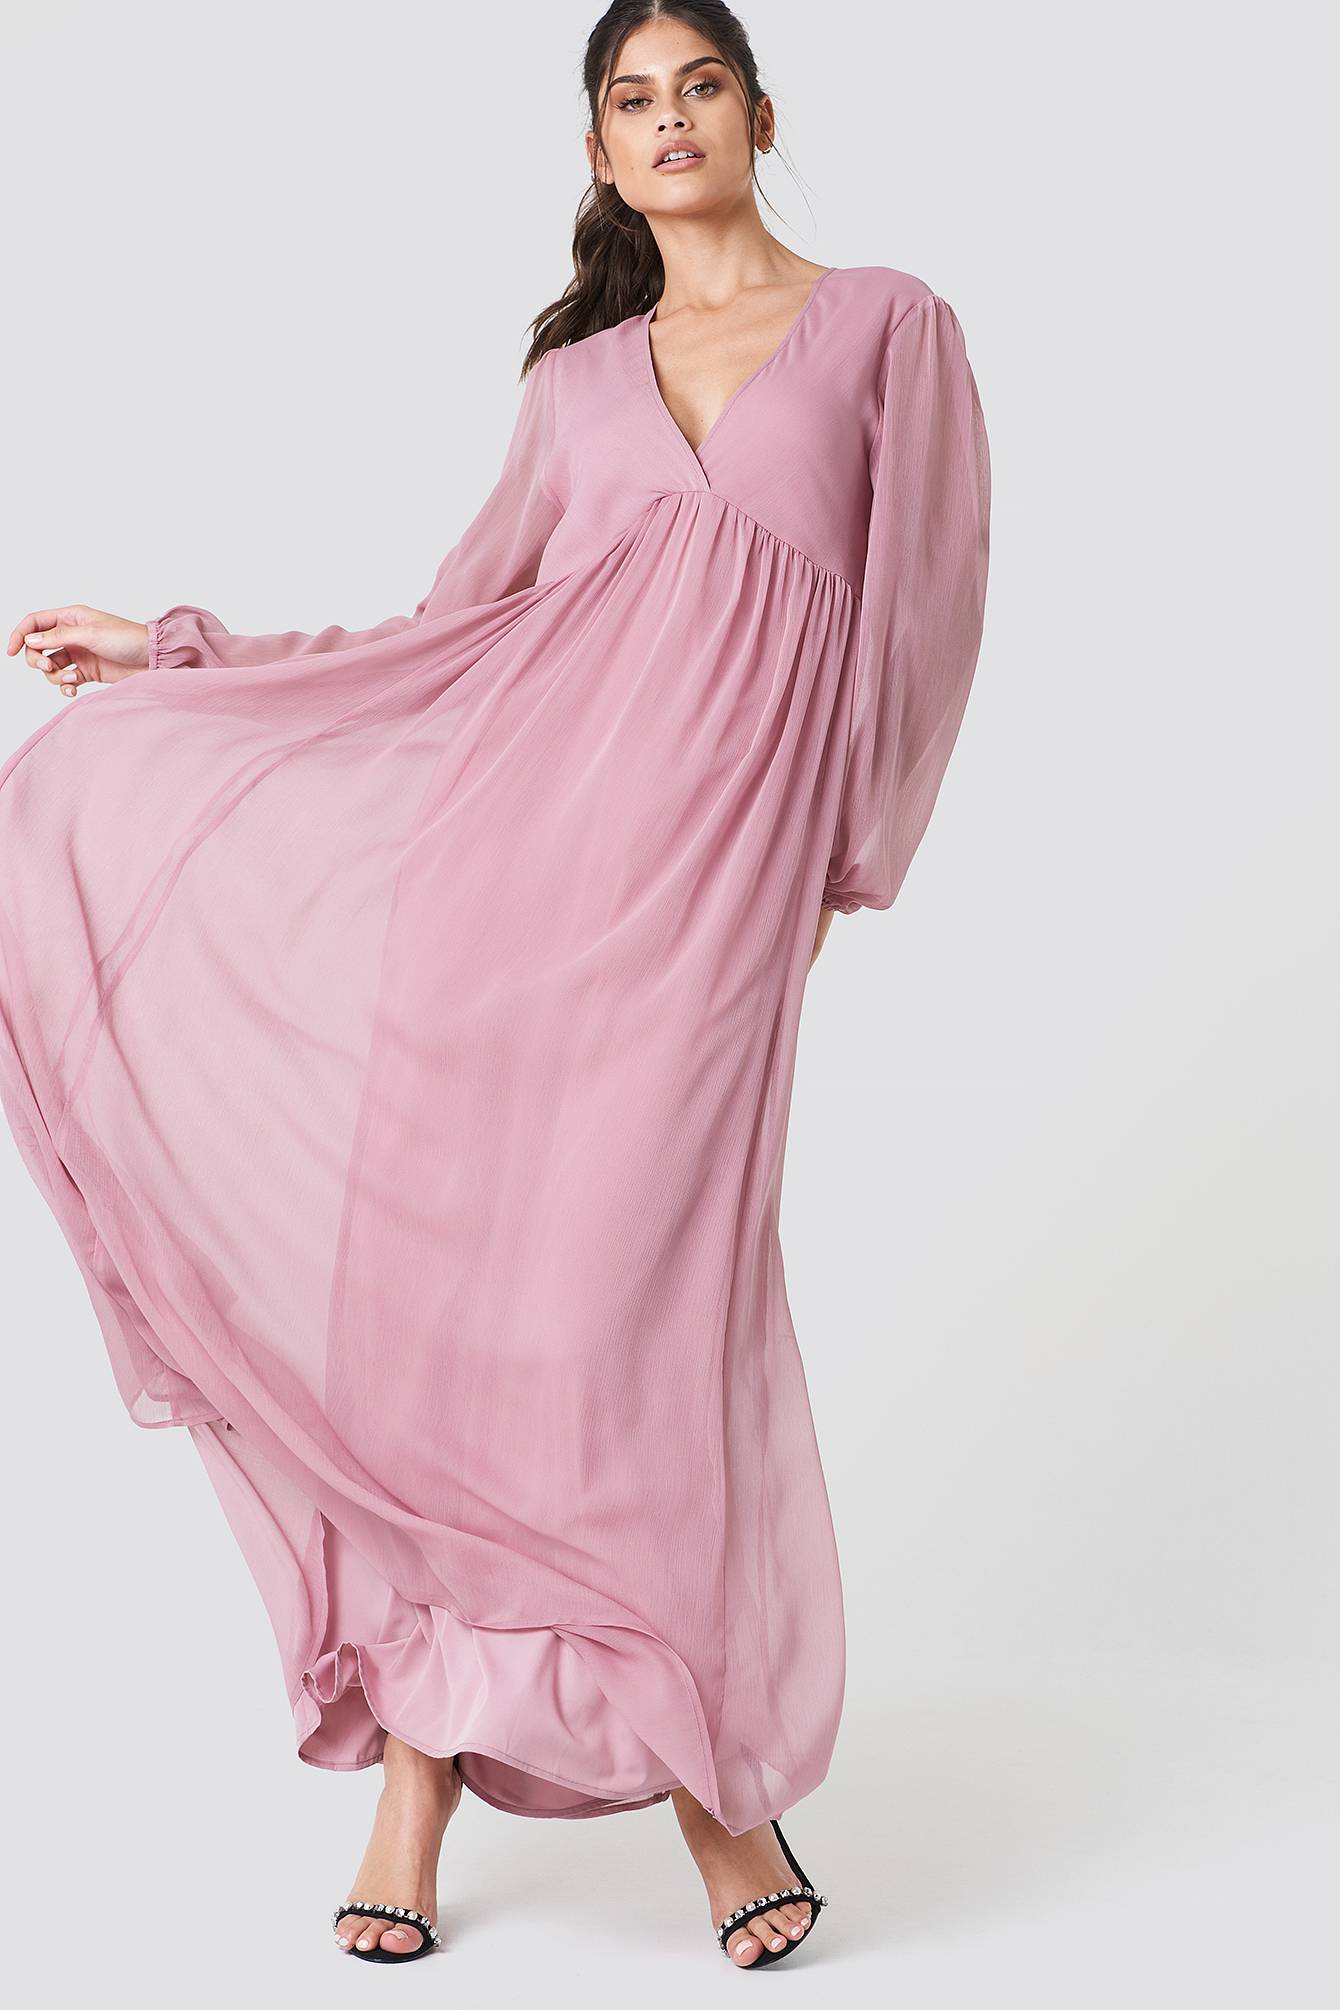 Image of NA-KD Boho Wide Balloon Sleeve Chiffon Dress - Pink